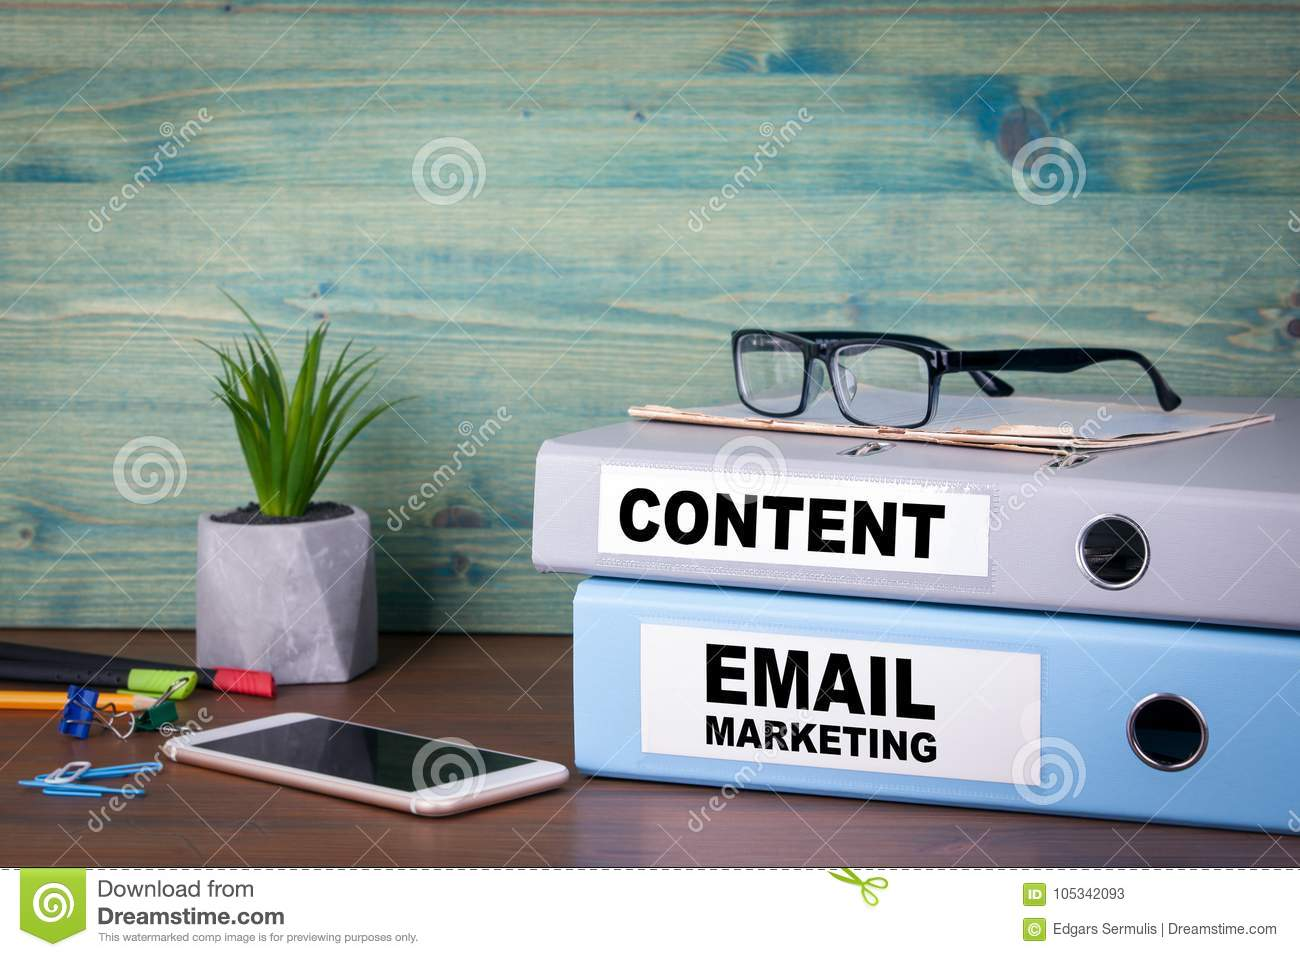 Email marketing and content. Successful business, advertising and social networking information